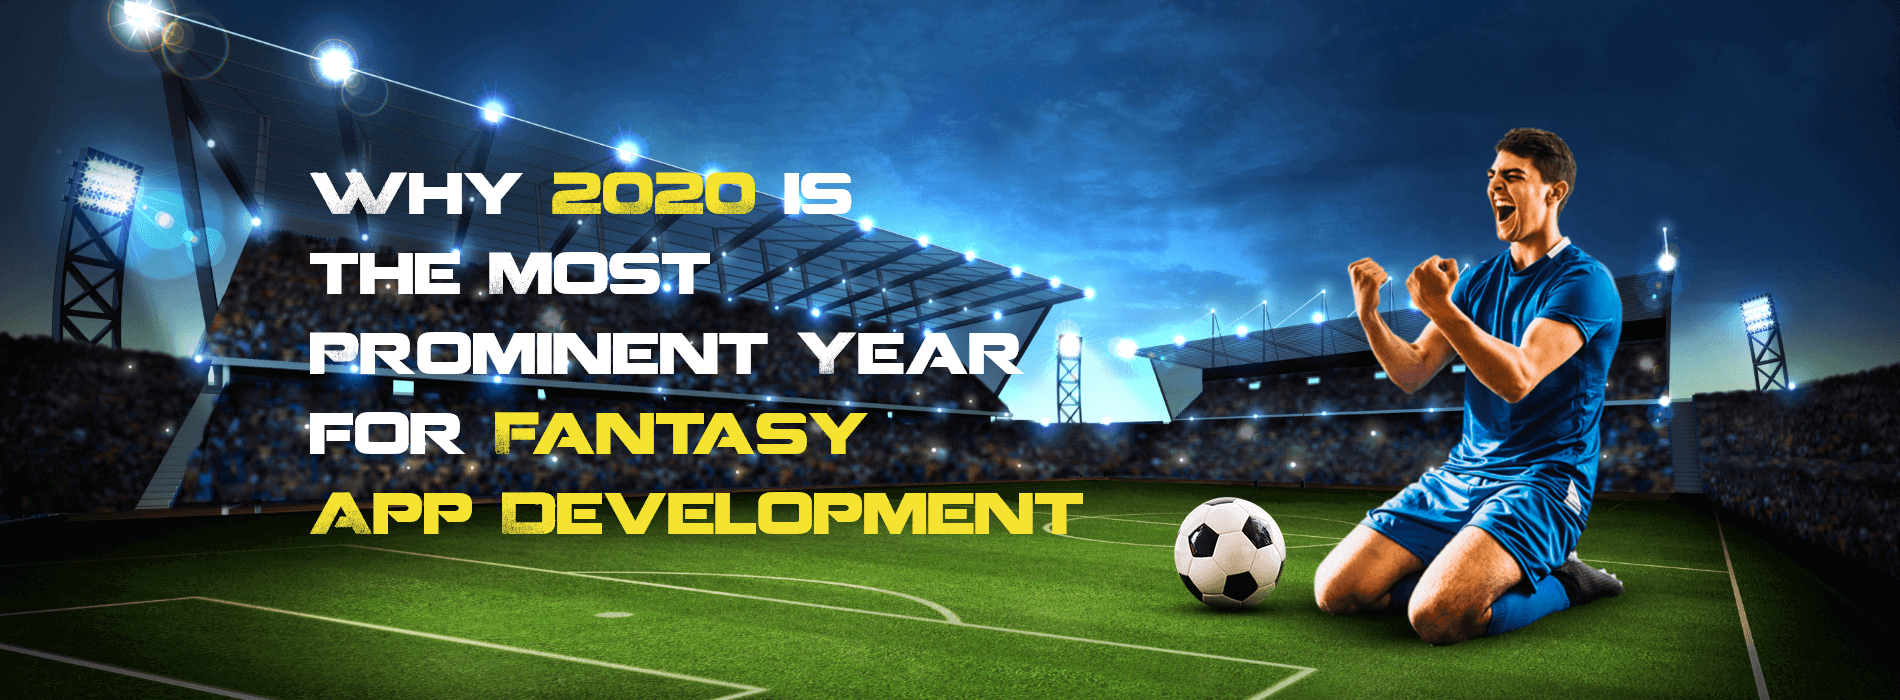 Why 2020 is the Most Prominent Year for Fantasy App Development?